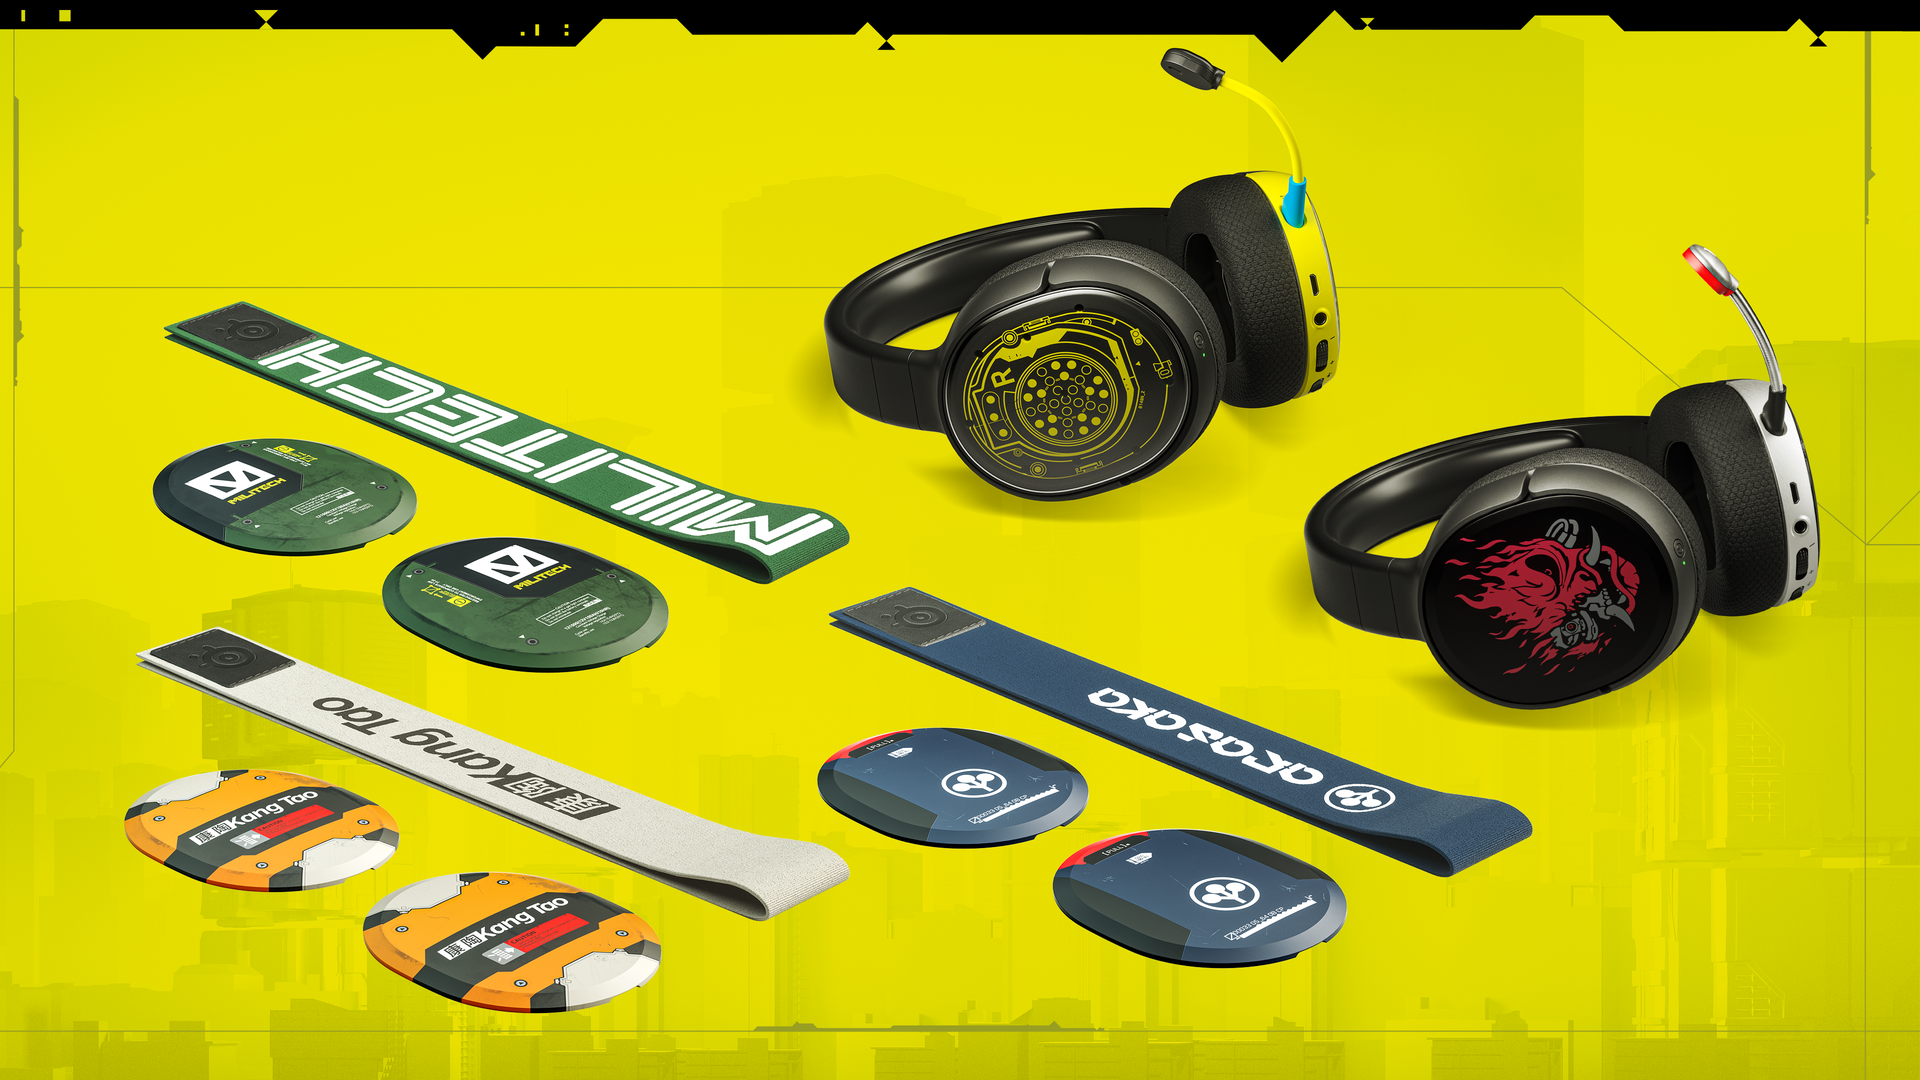 Both Cyberpunk SteelSeries gaming headsets on tabletop with the game branded headbands next to them